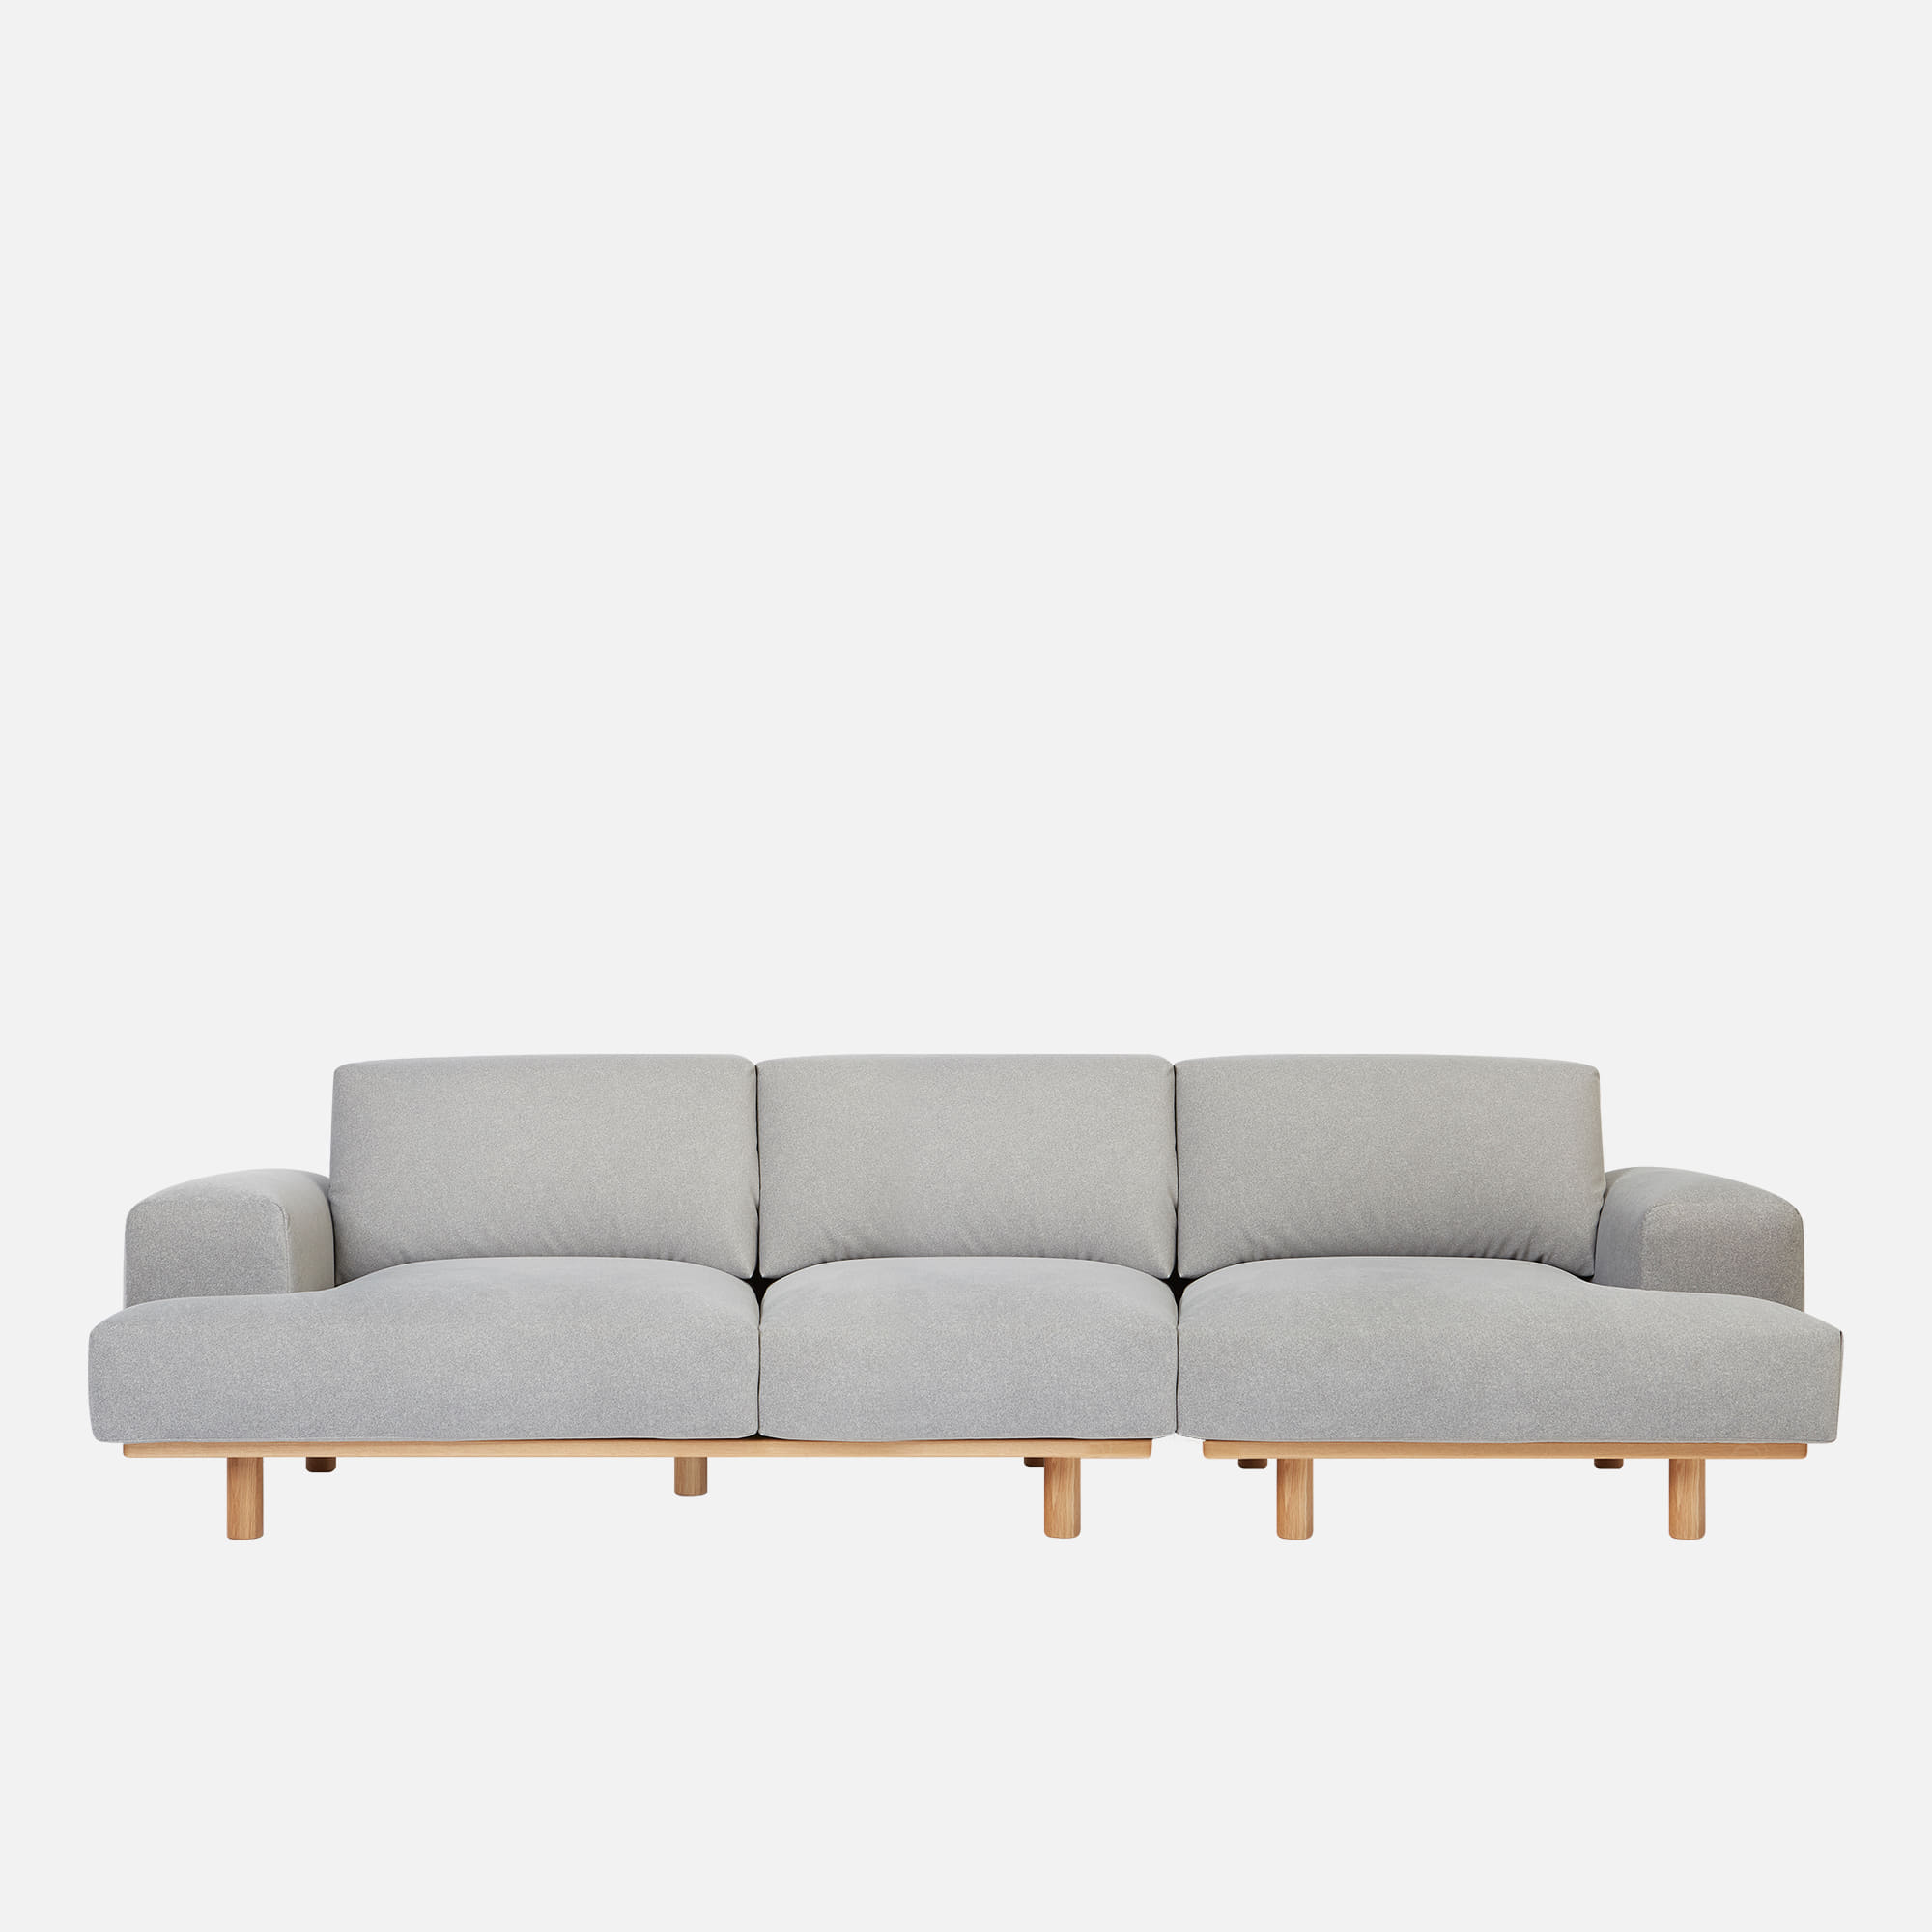 [얼리버드] Soft 3 unit Sofa